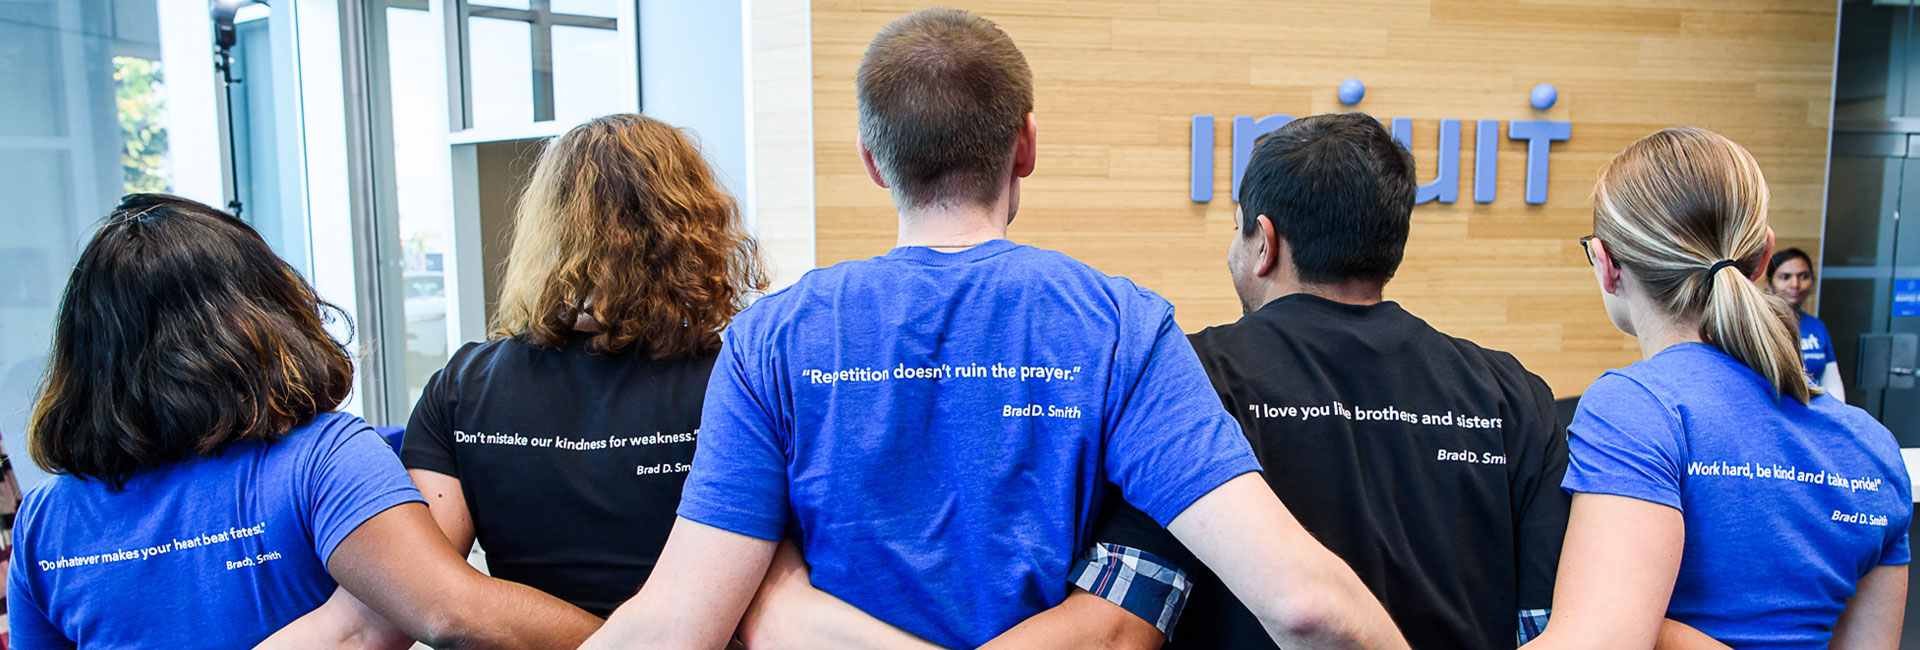 Employees wearing an Intuit shirt with Brad Smith quotes